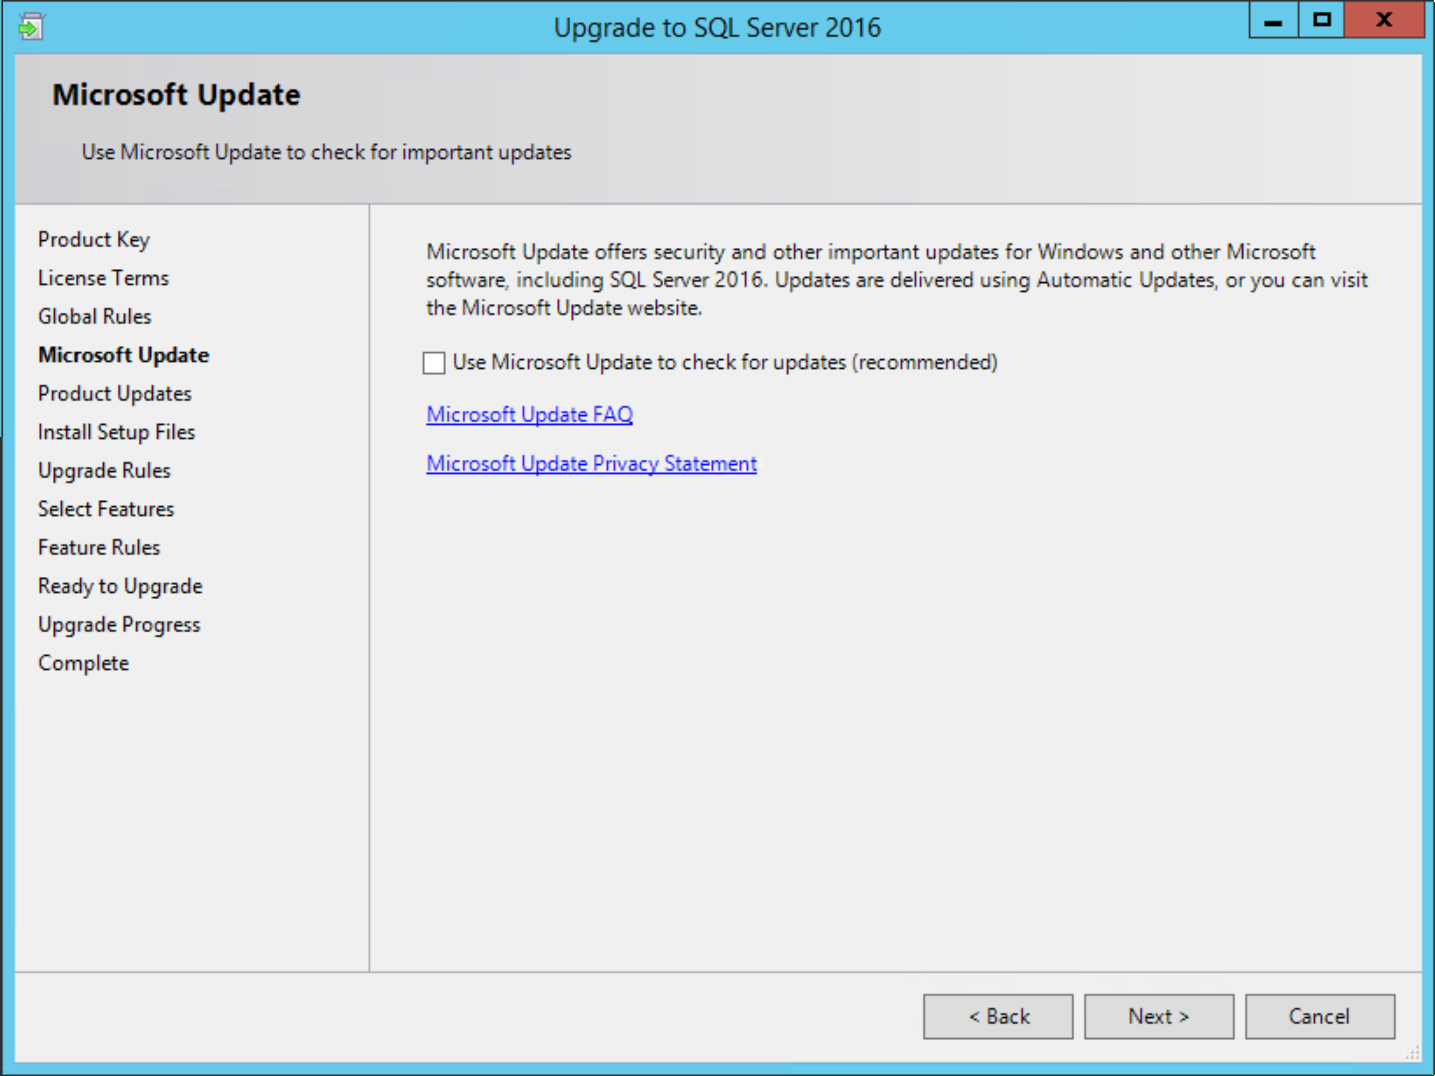 Configuration Manager SQL Upgrade | Wetter's Source